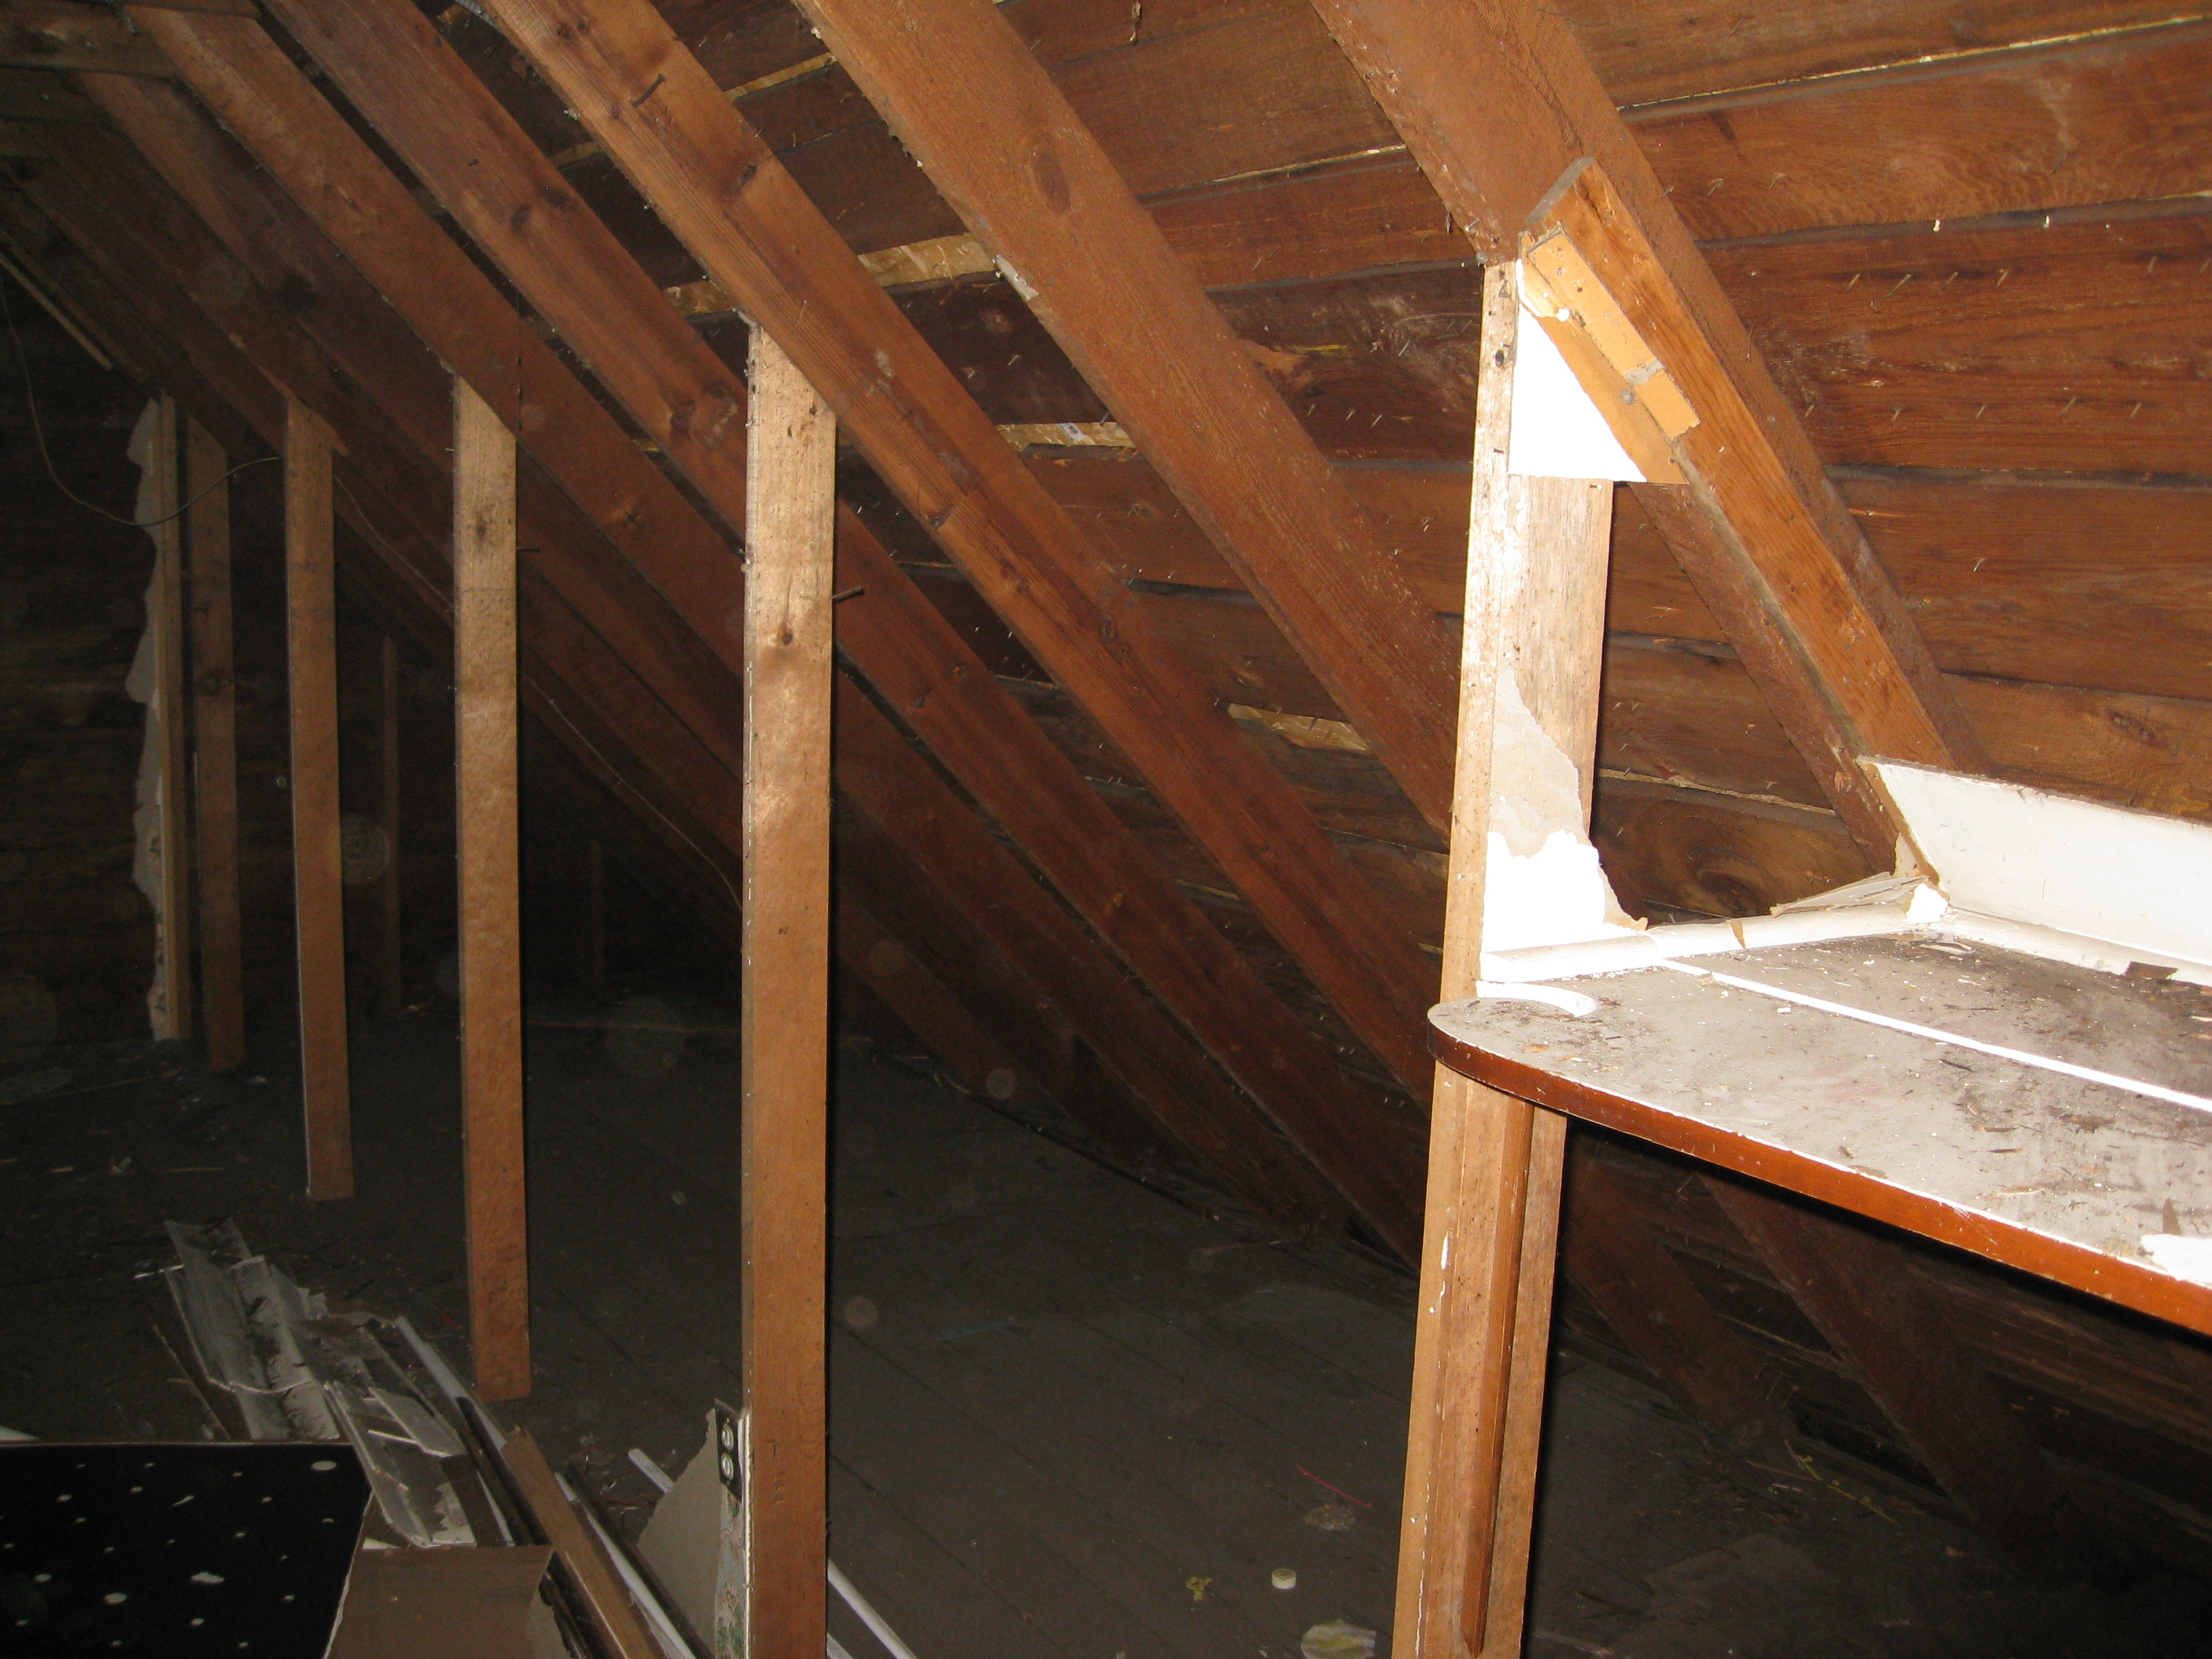 Rfz Based Control Room In An A Frame Attic Img 0007 6 Jpg